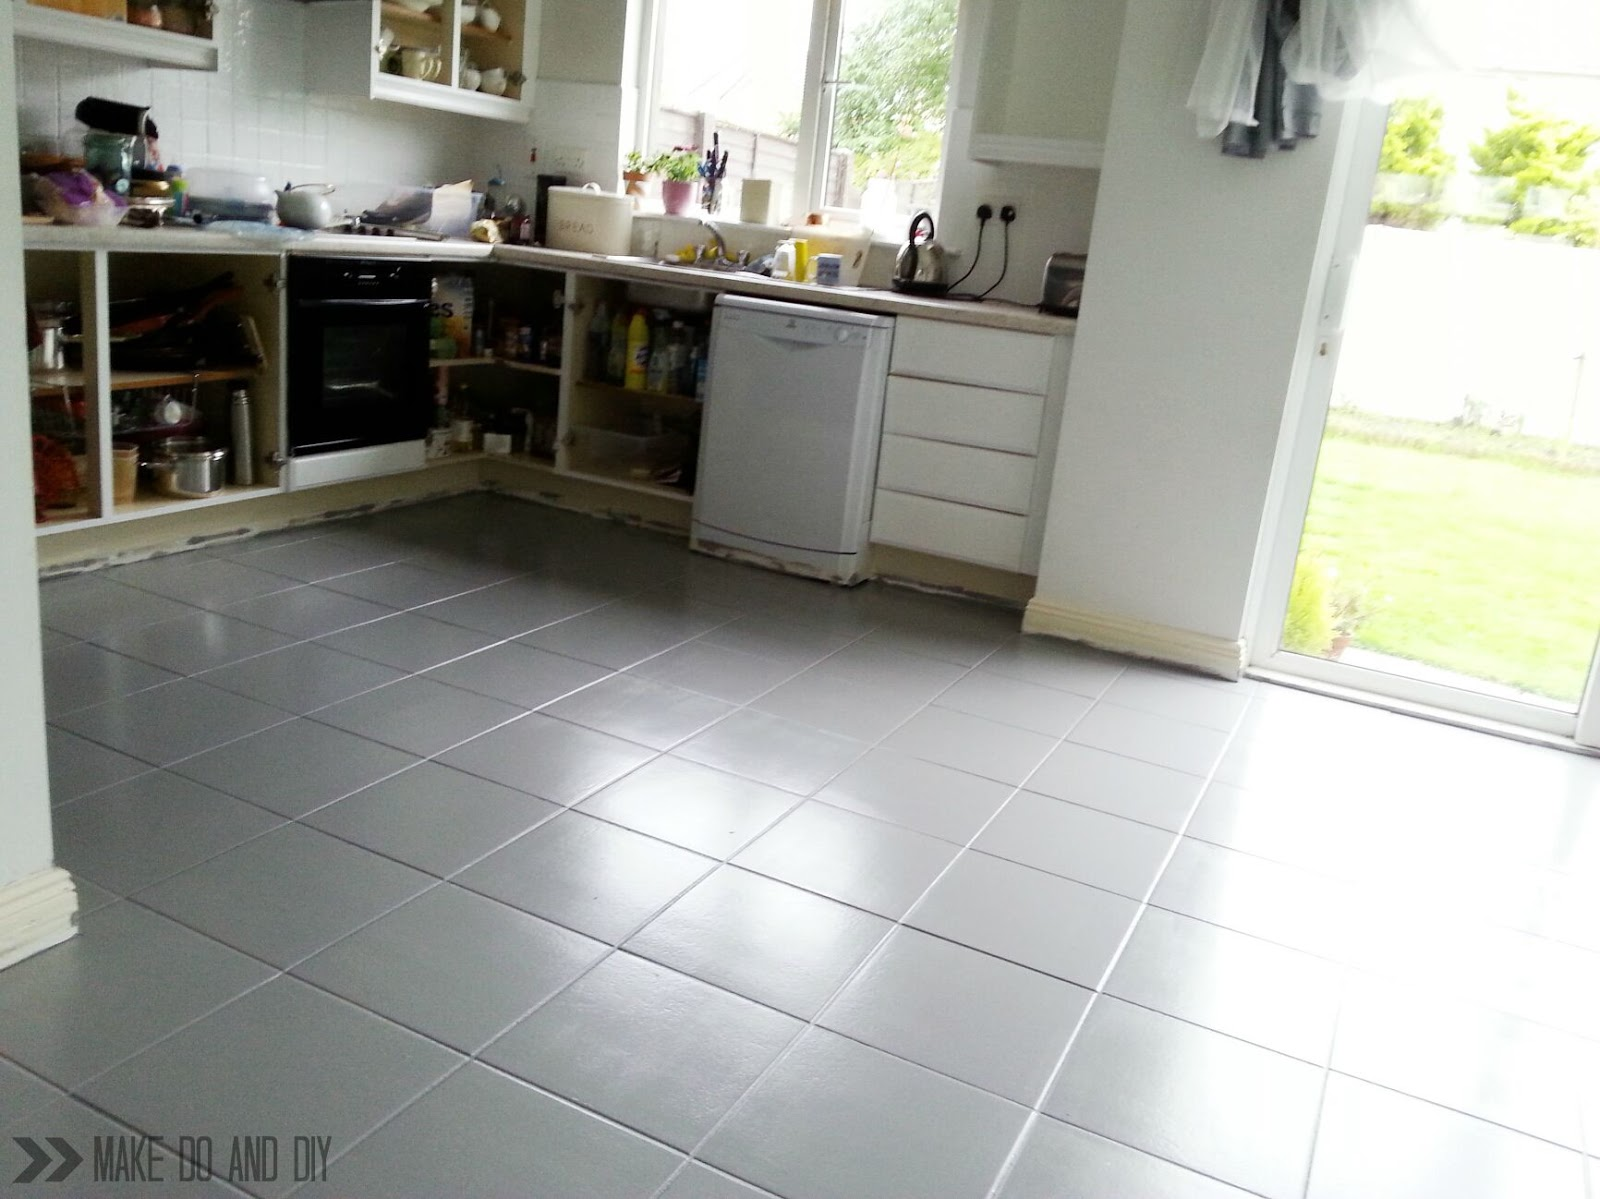 Painted Tile Floorno Really Make Do And DIY - What do you need for tile floor